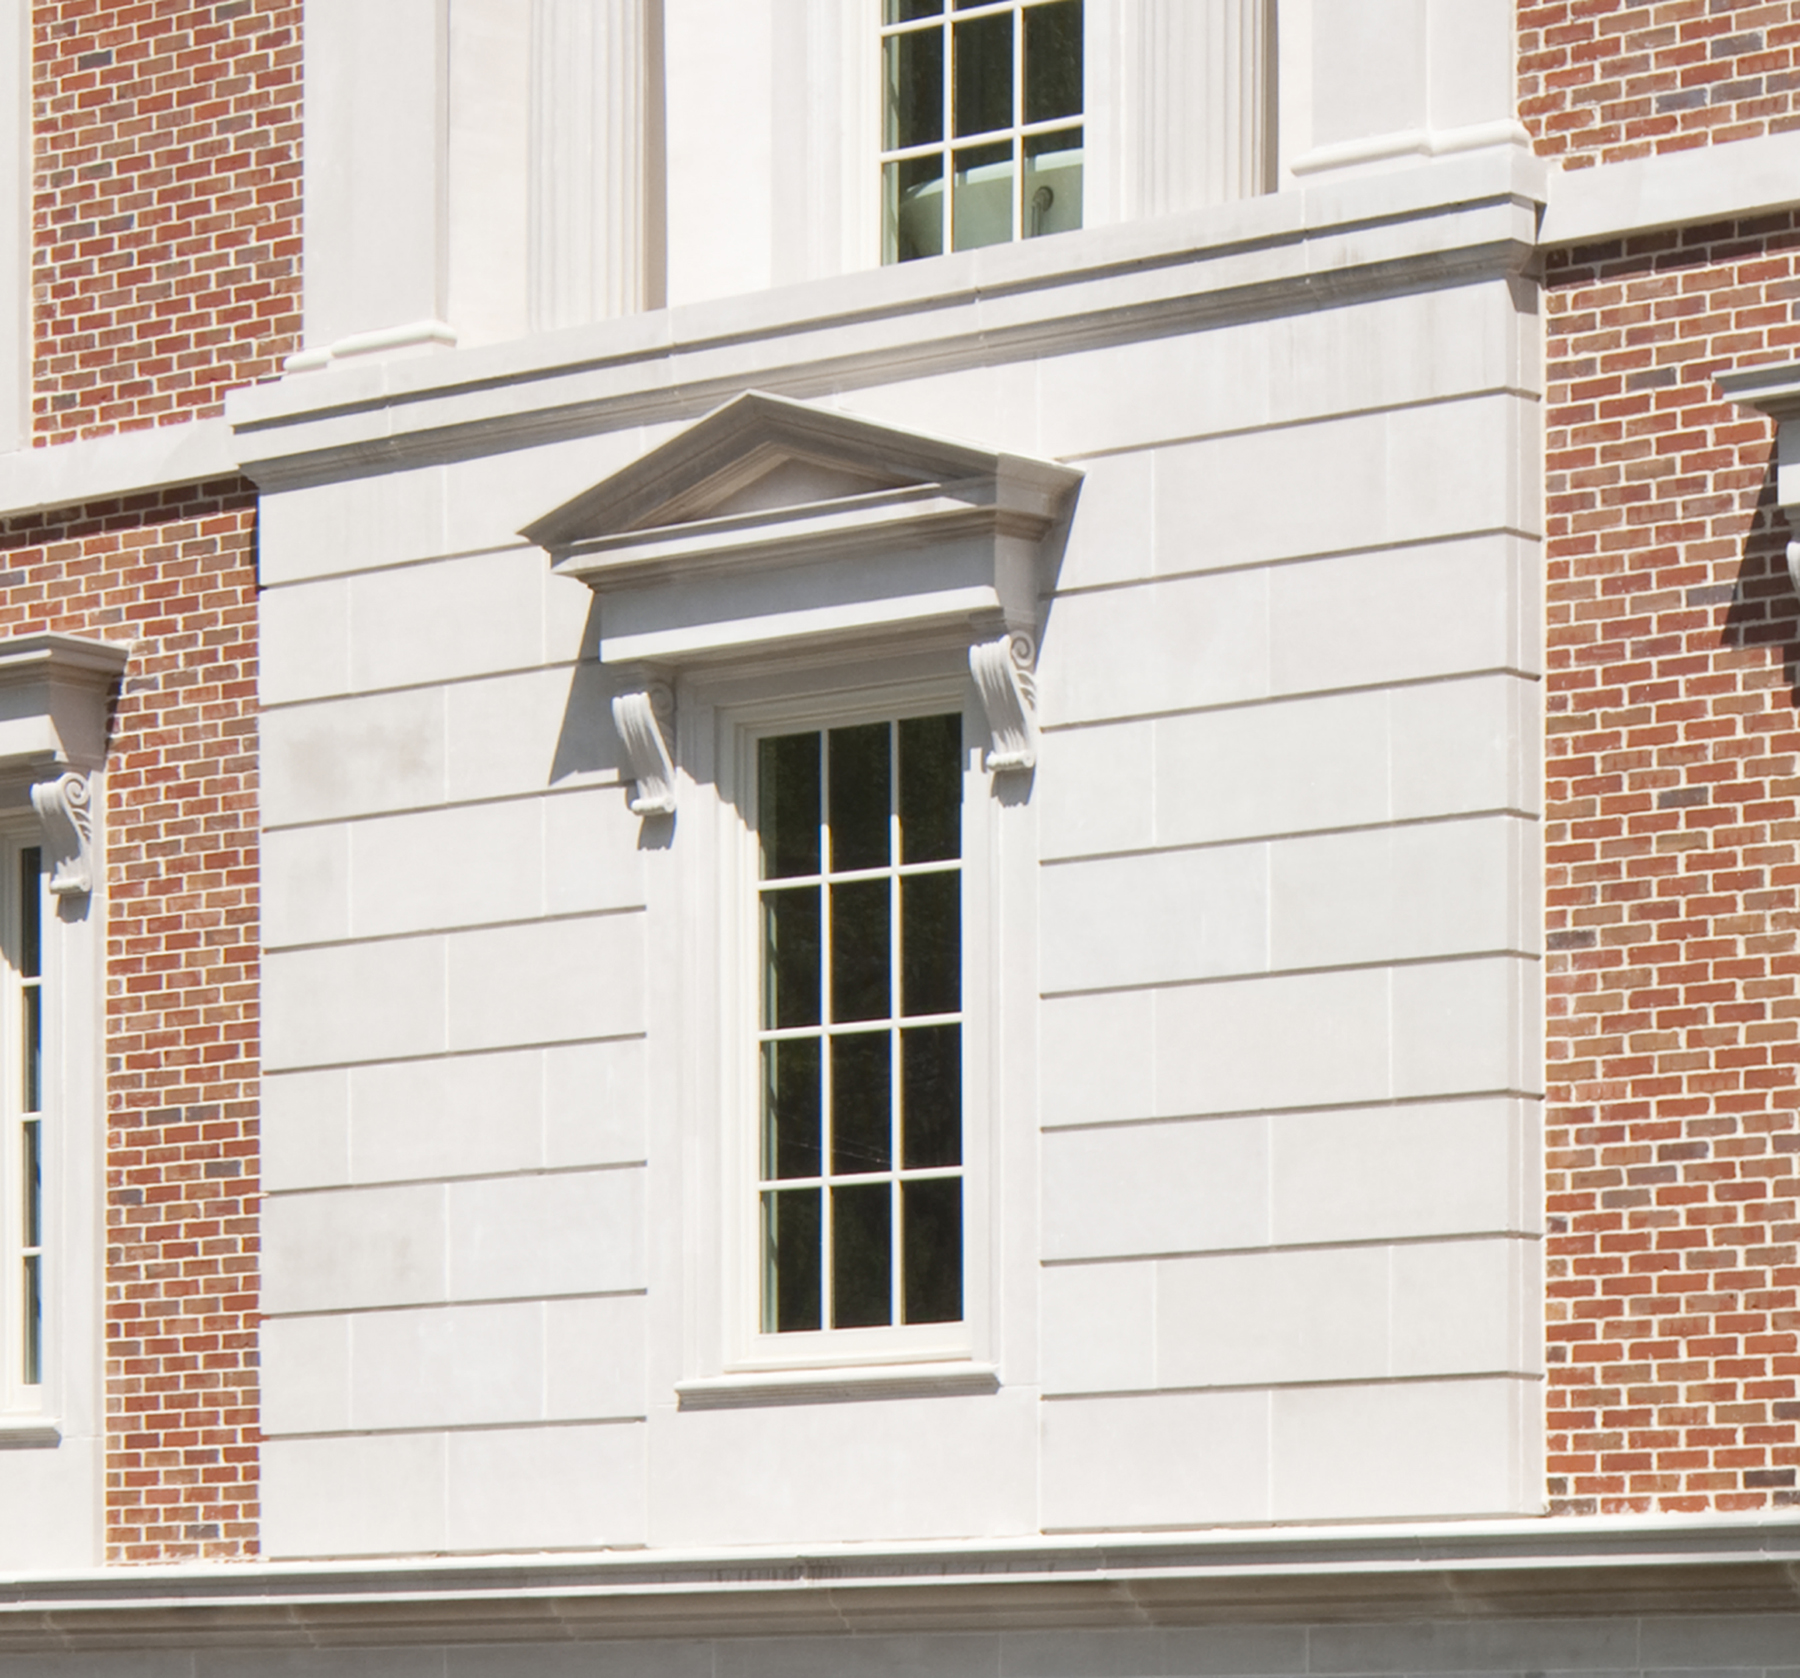 Accent Window Detail, The Crescent at Post Riverside | William T. Baker